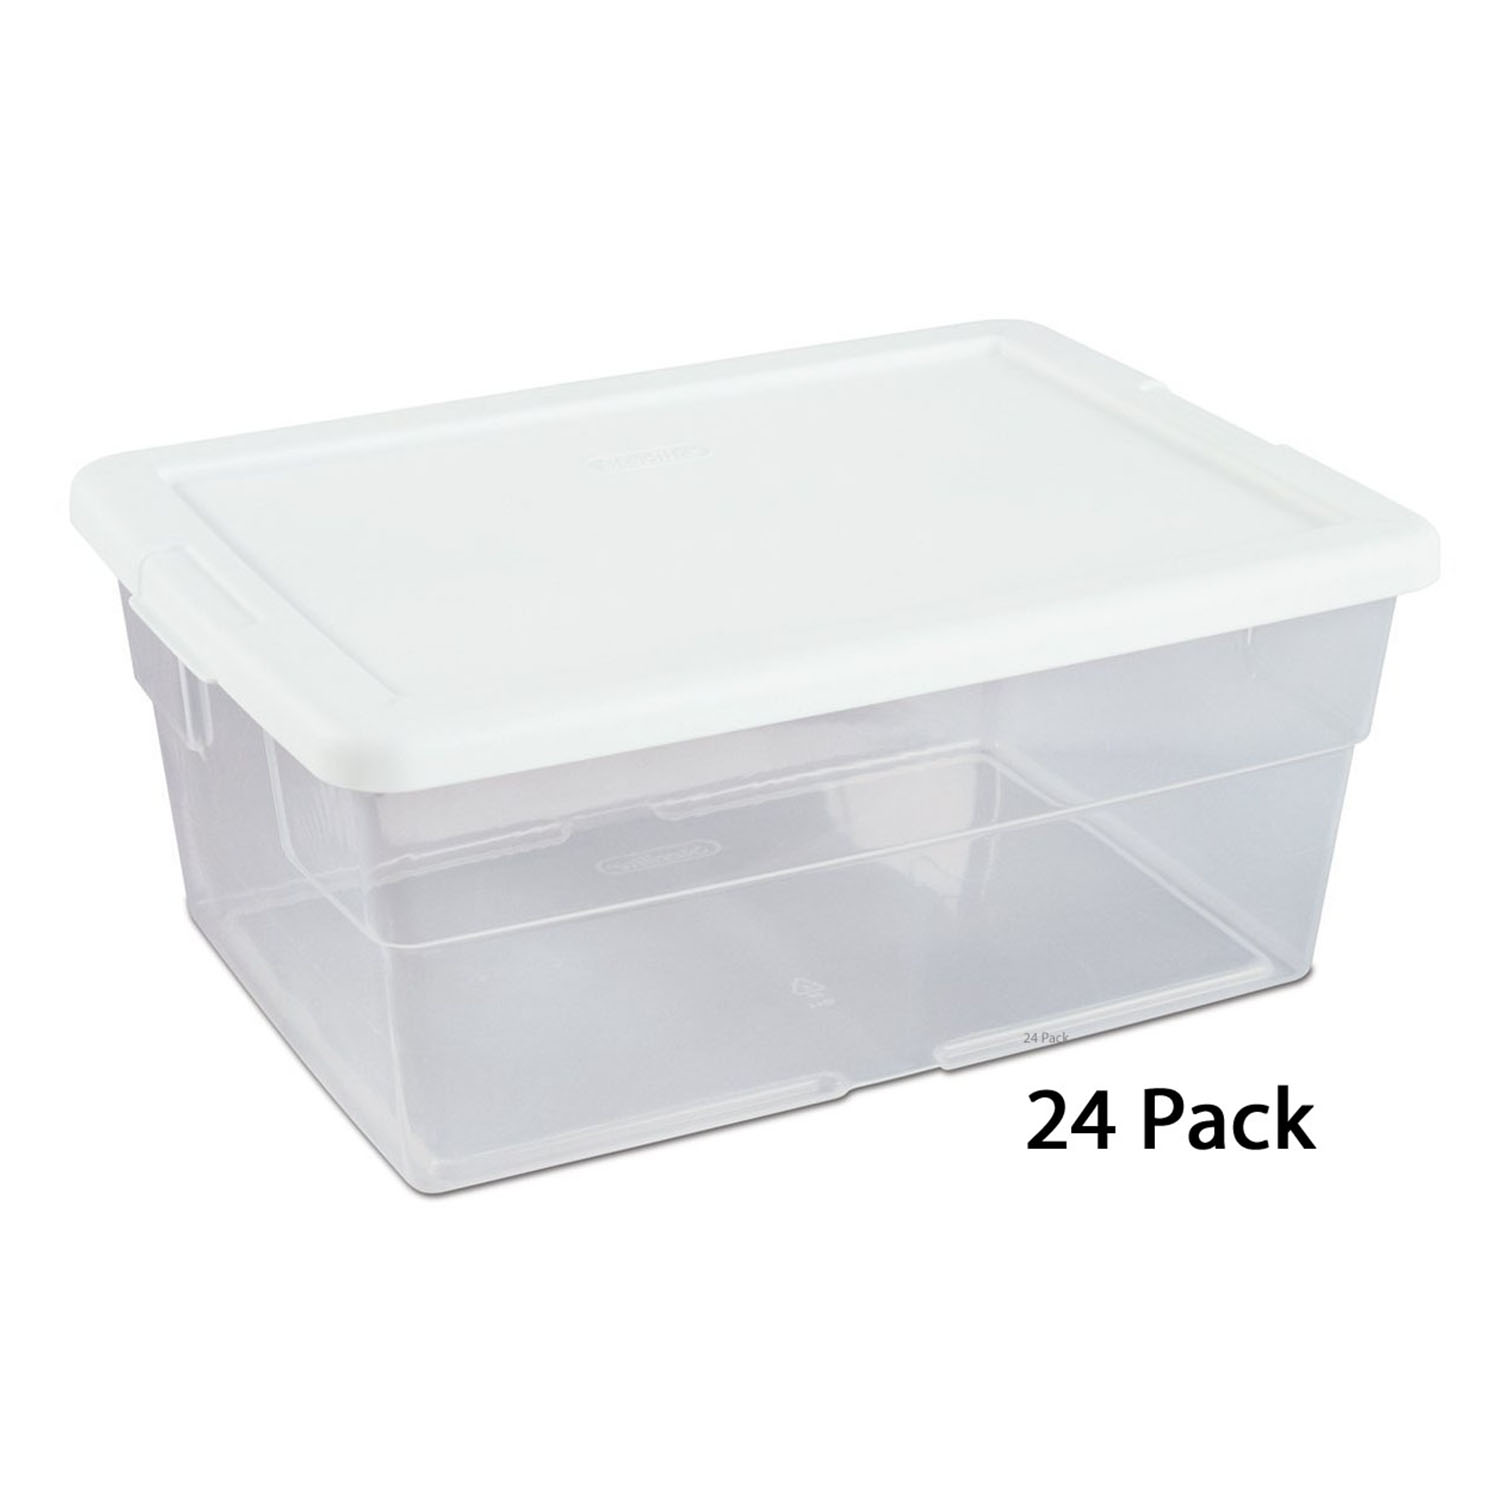 storage plastic large home at containers planetaspa flexible march oval this sale week blue on info tub